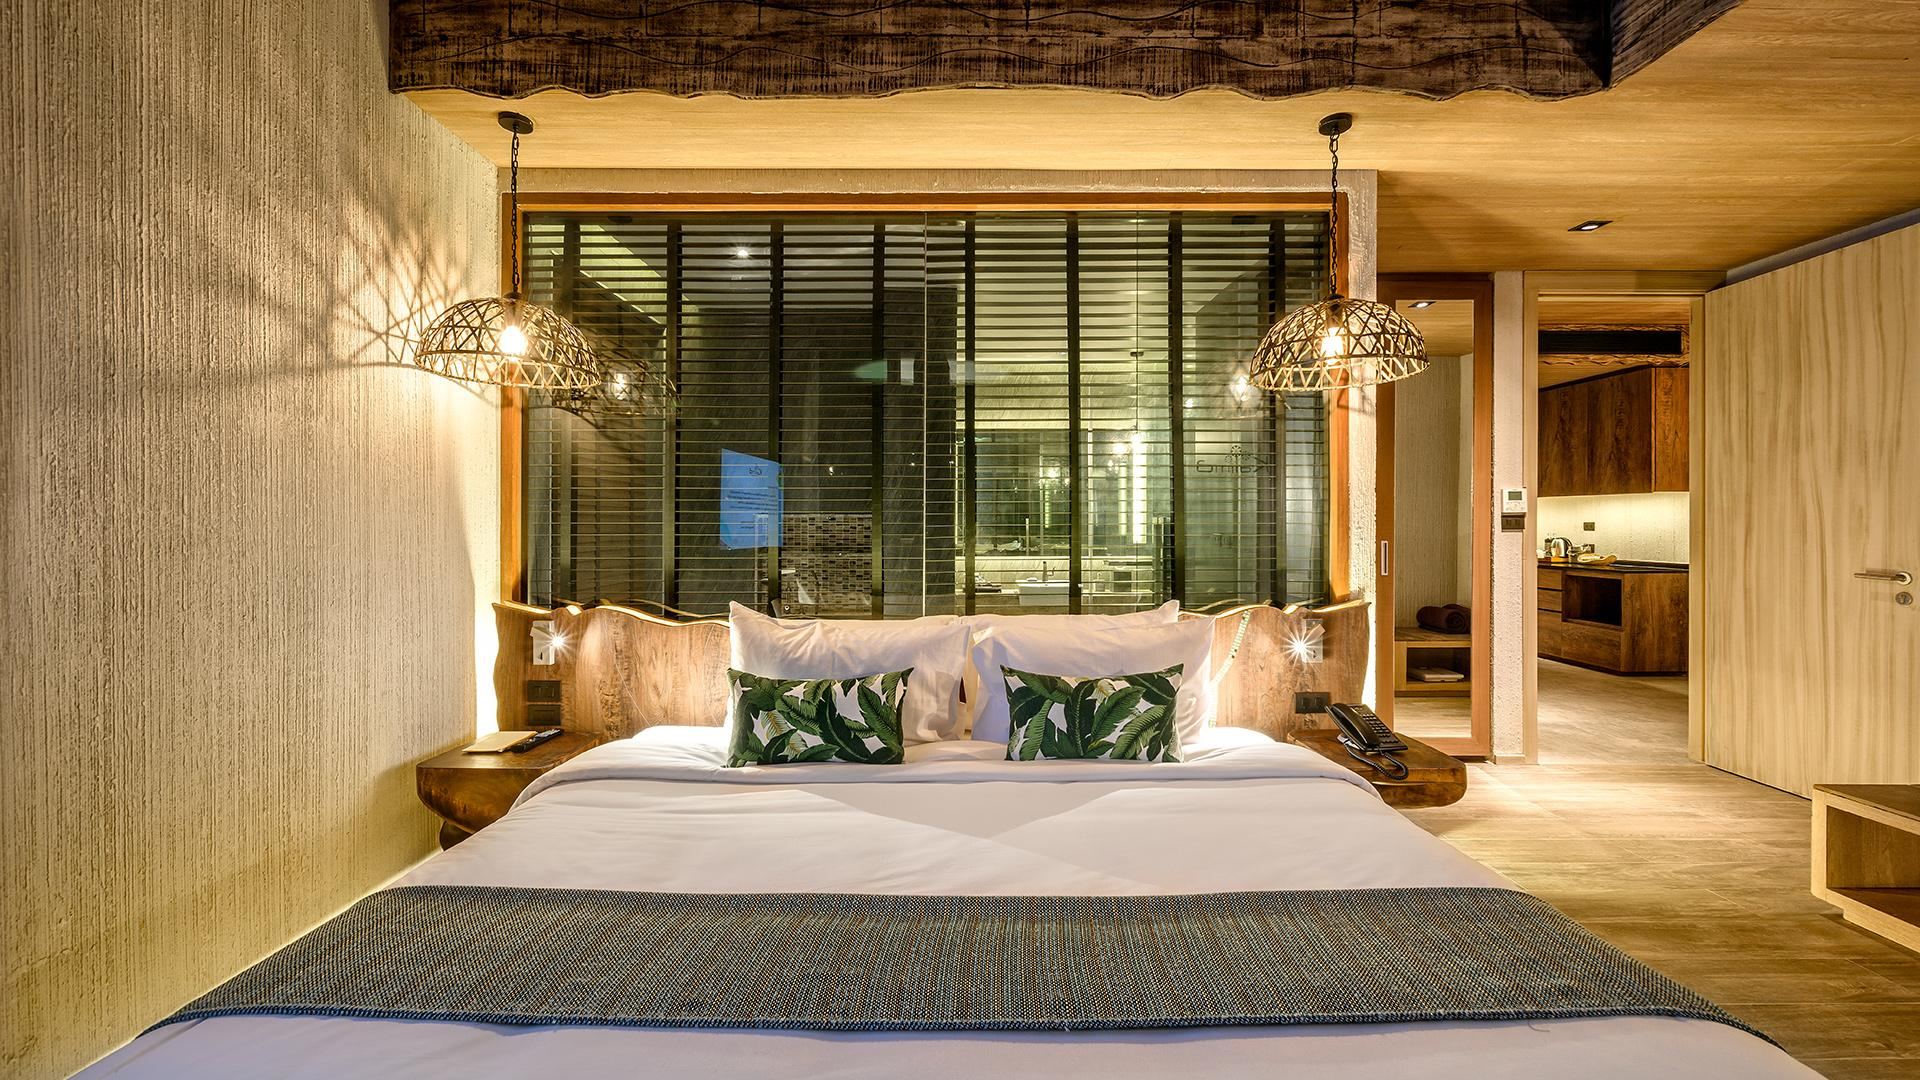 Two-Bedroom Family Suite image 1 at Kalima Resort and Villas Khao Lak by Amphoe Thai Mueang, Phang-nga, Thailand